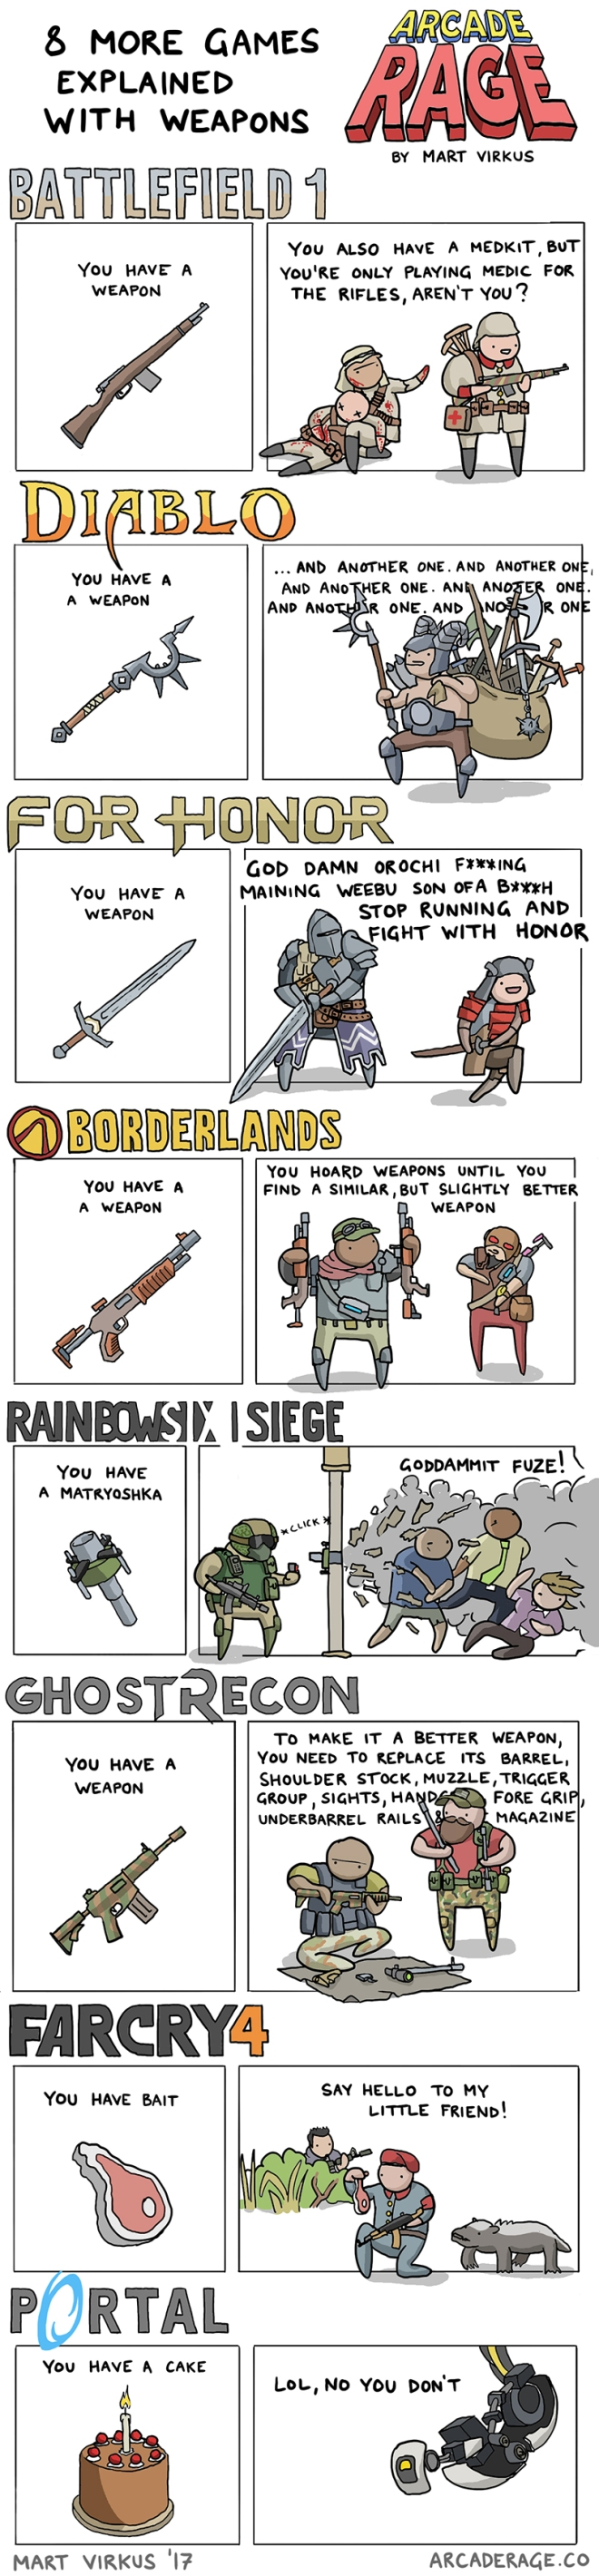 8 Games Explained With Weapons